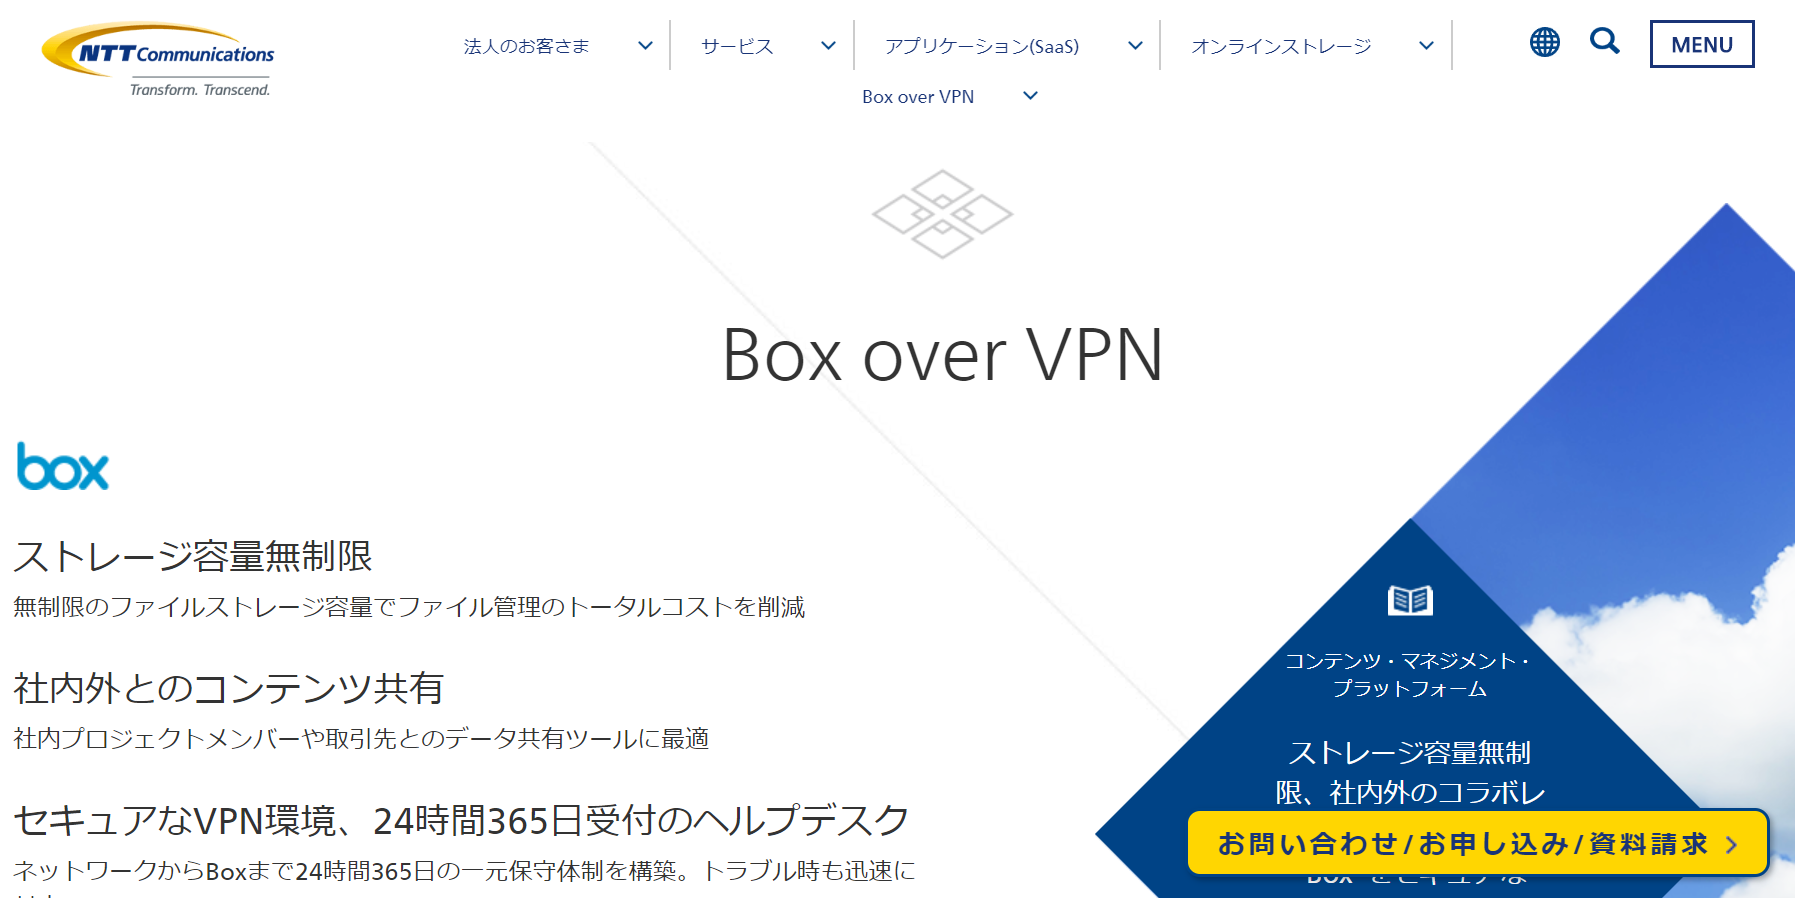 Box over VPN